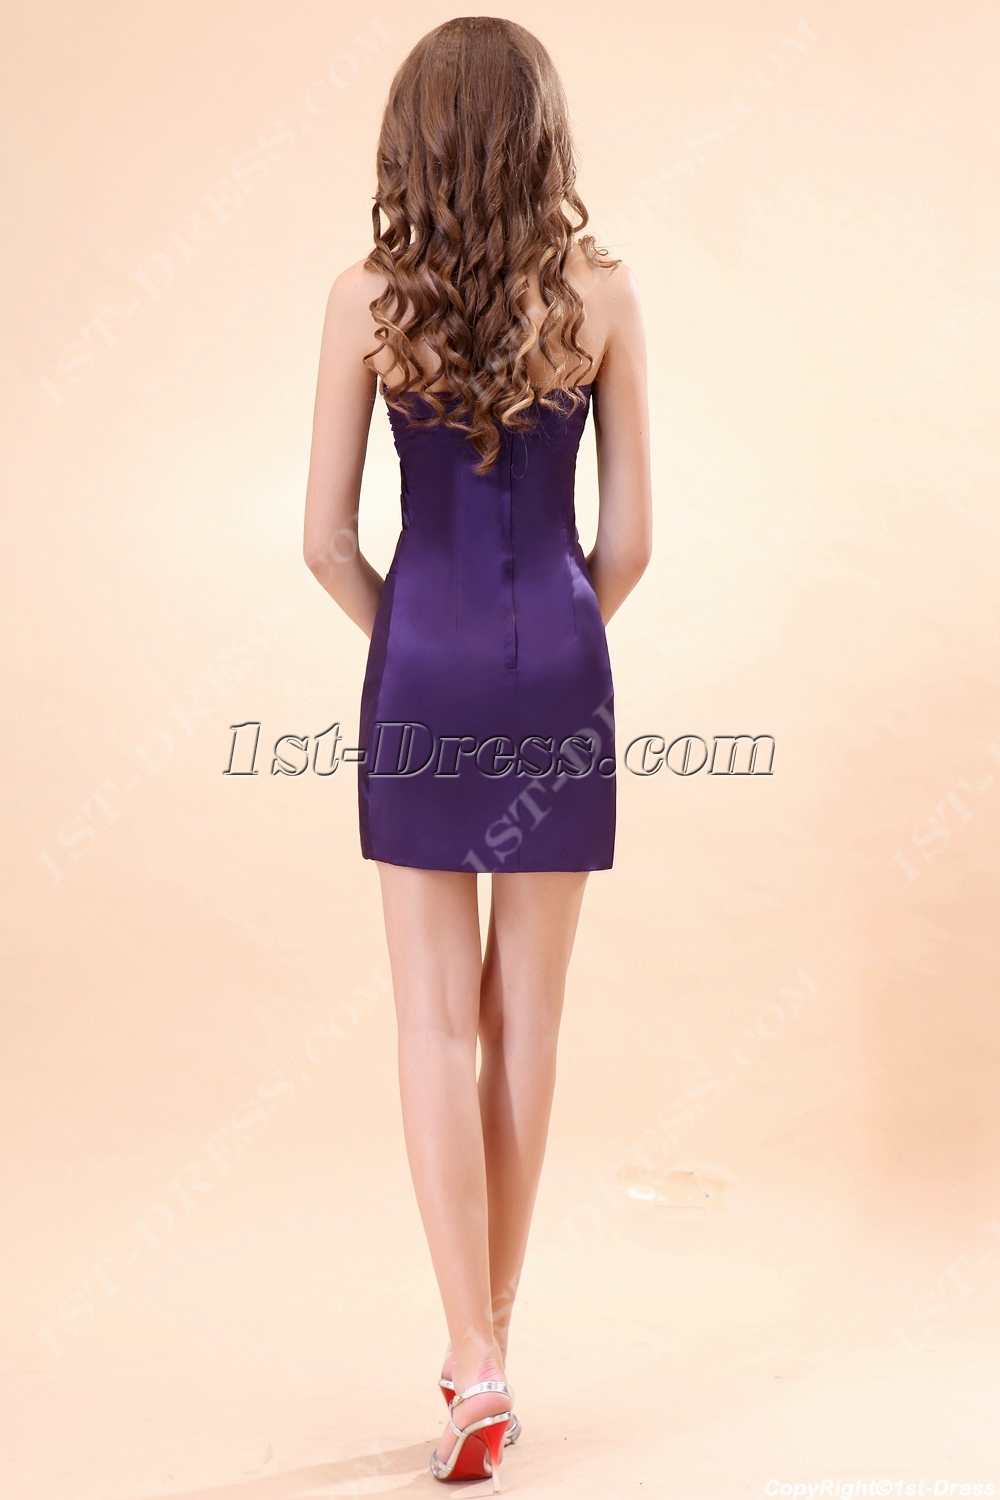 976dceb527 Cute Purple Cocktail Dresses - Gomes Weine AG